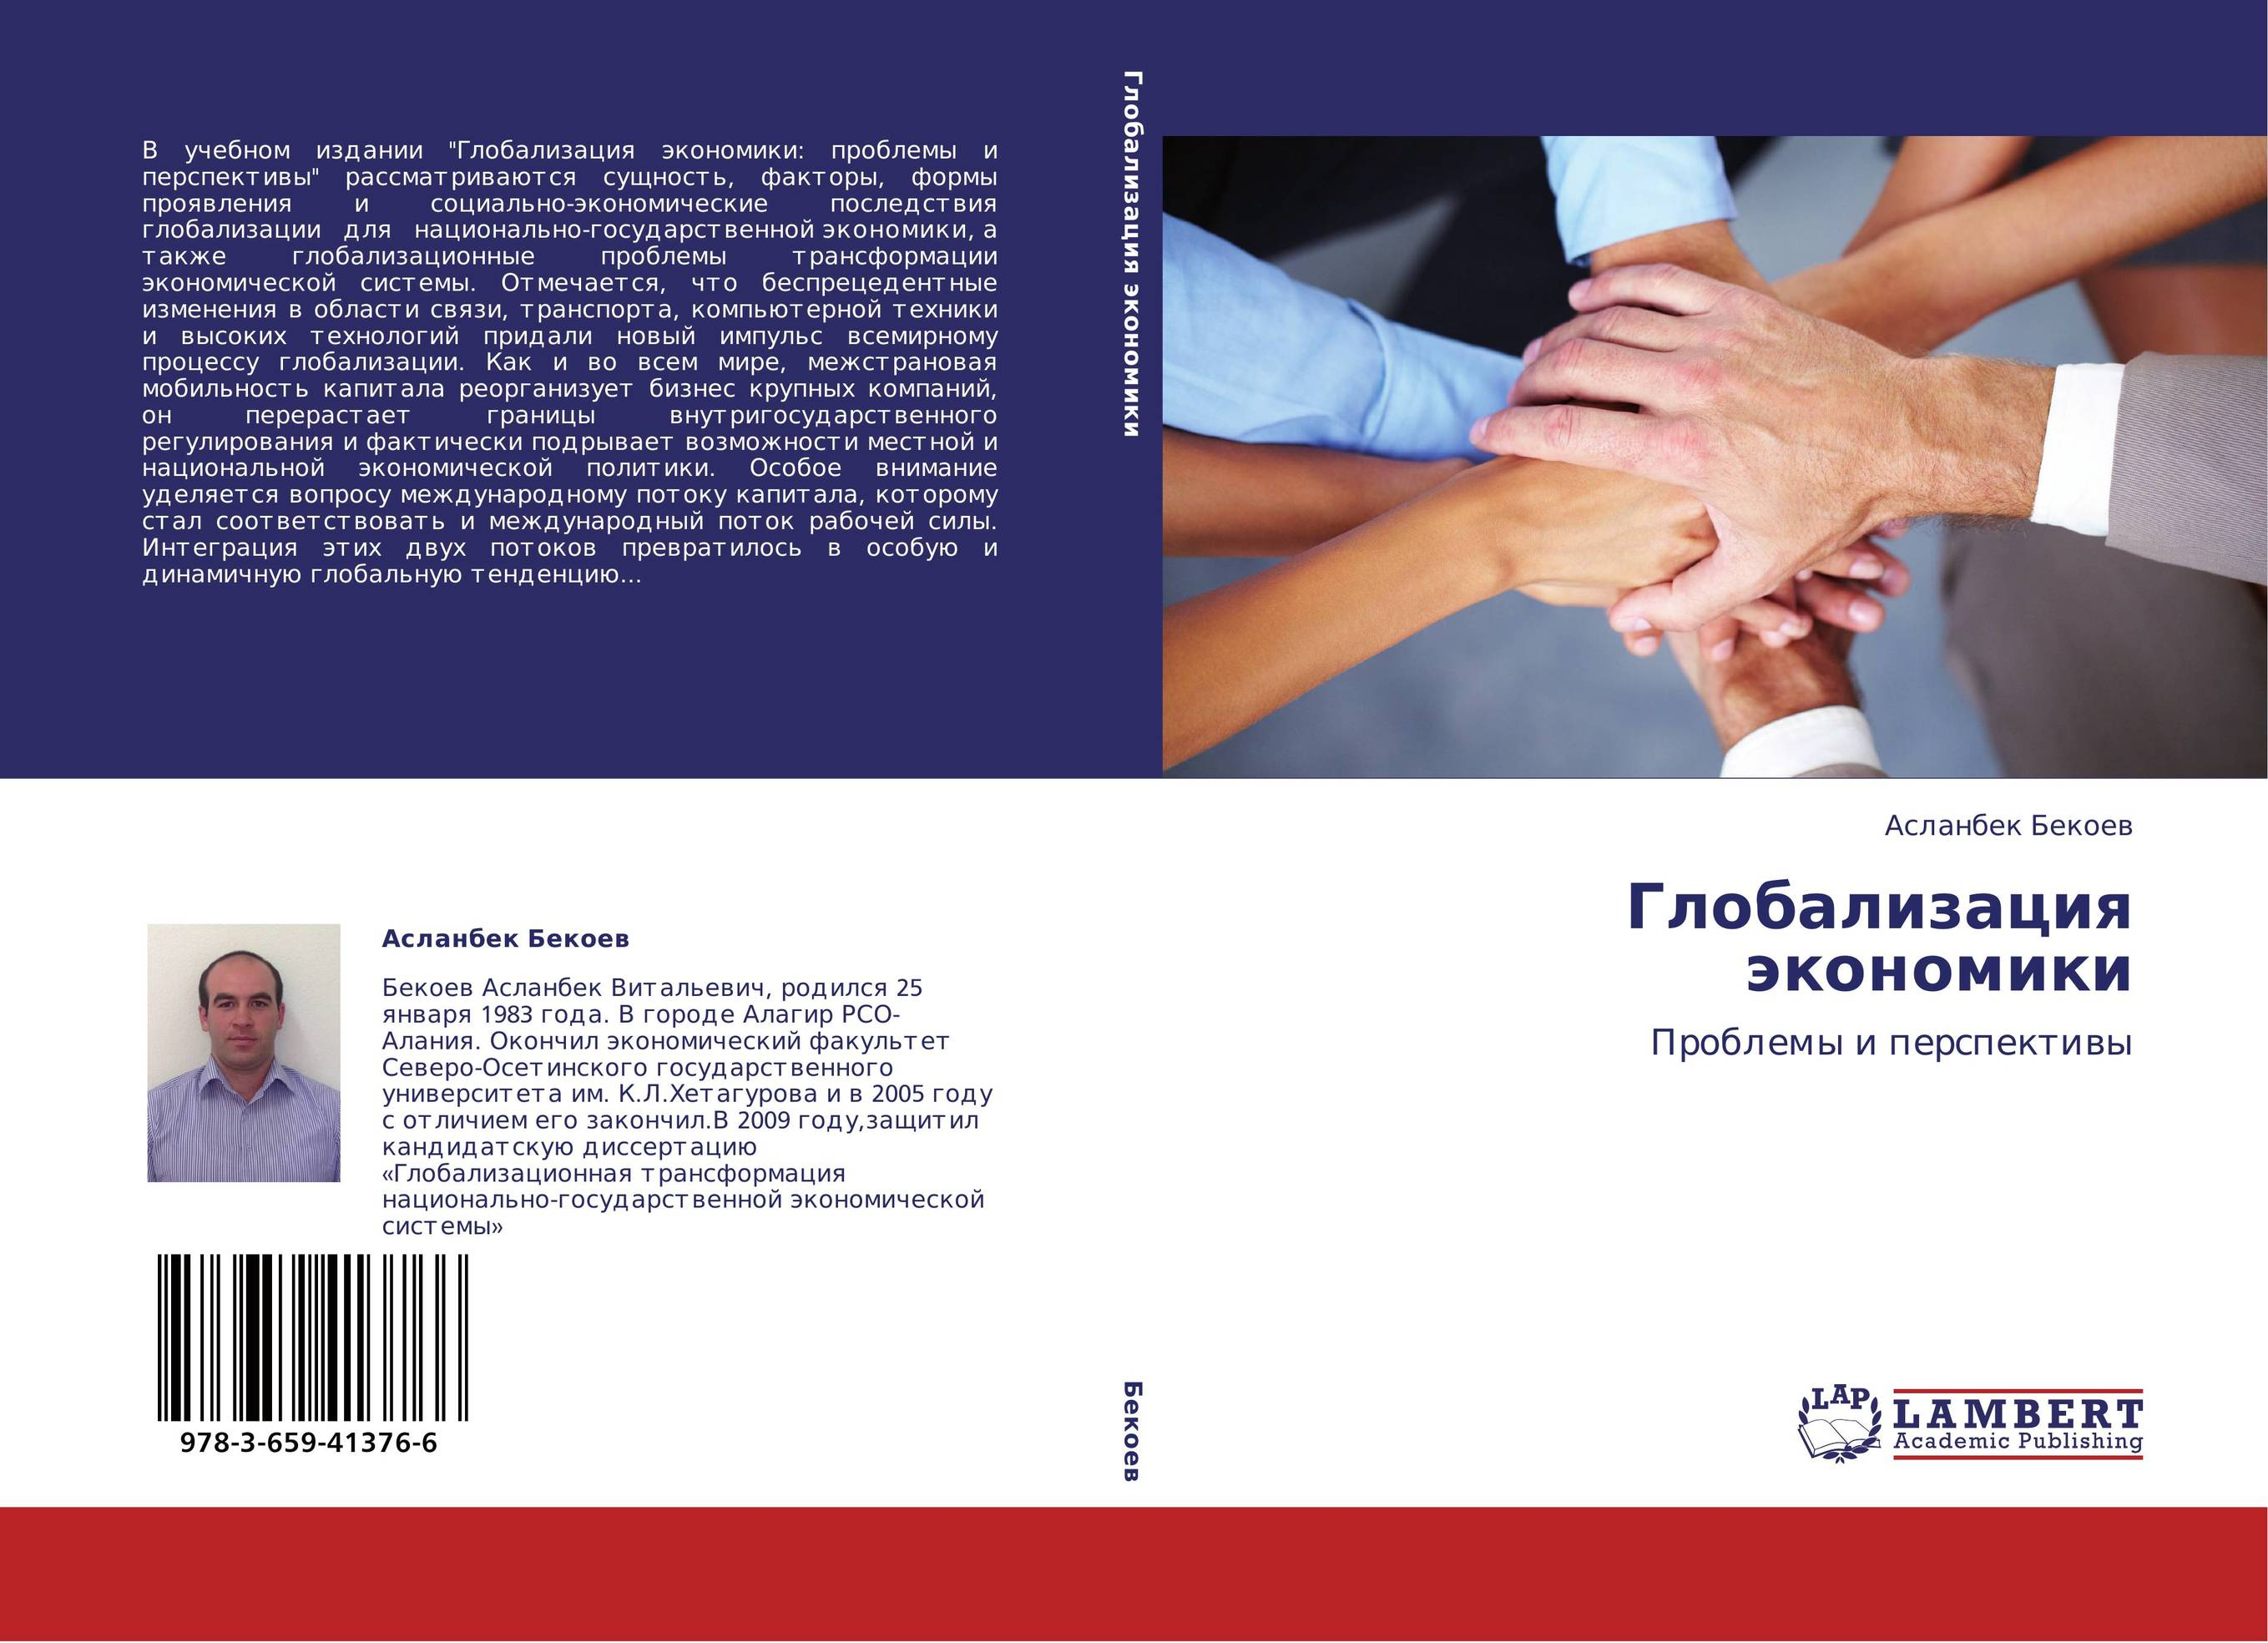 corporate governance and firm performance thesis Masterthesis oncorporategovernance: governance issues affecting the firm that corporate governance aims to of a firm and its performance and firm.